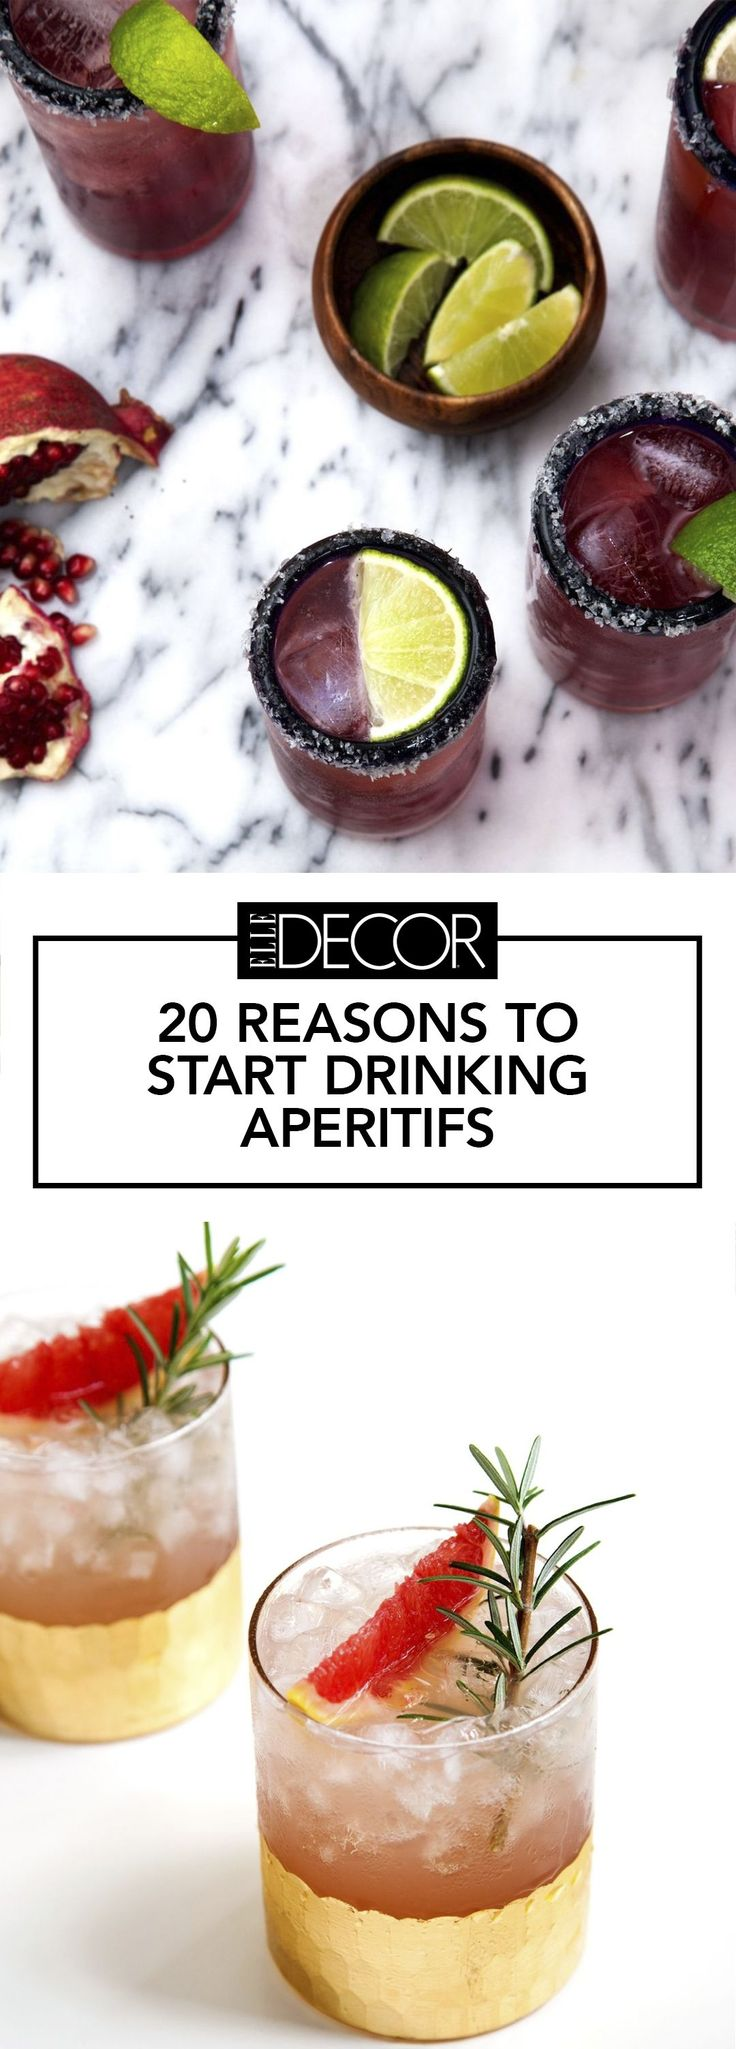 20 Best Aperitif Drinks To Try This Weekend - ELLEDecor.com